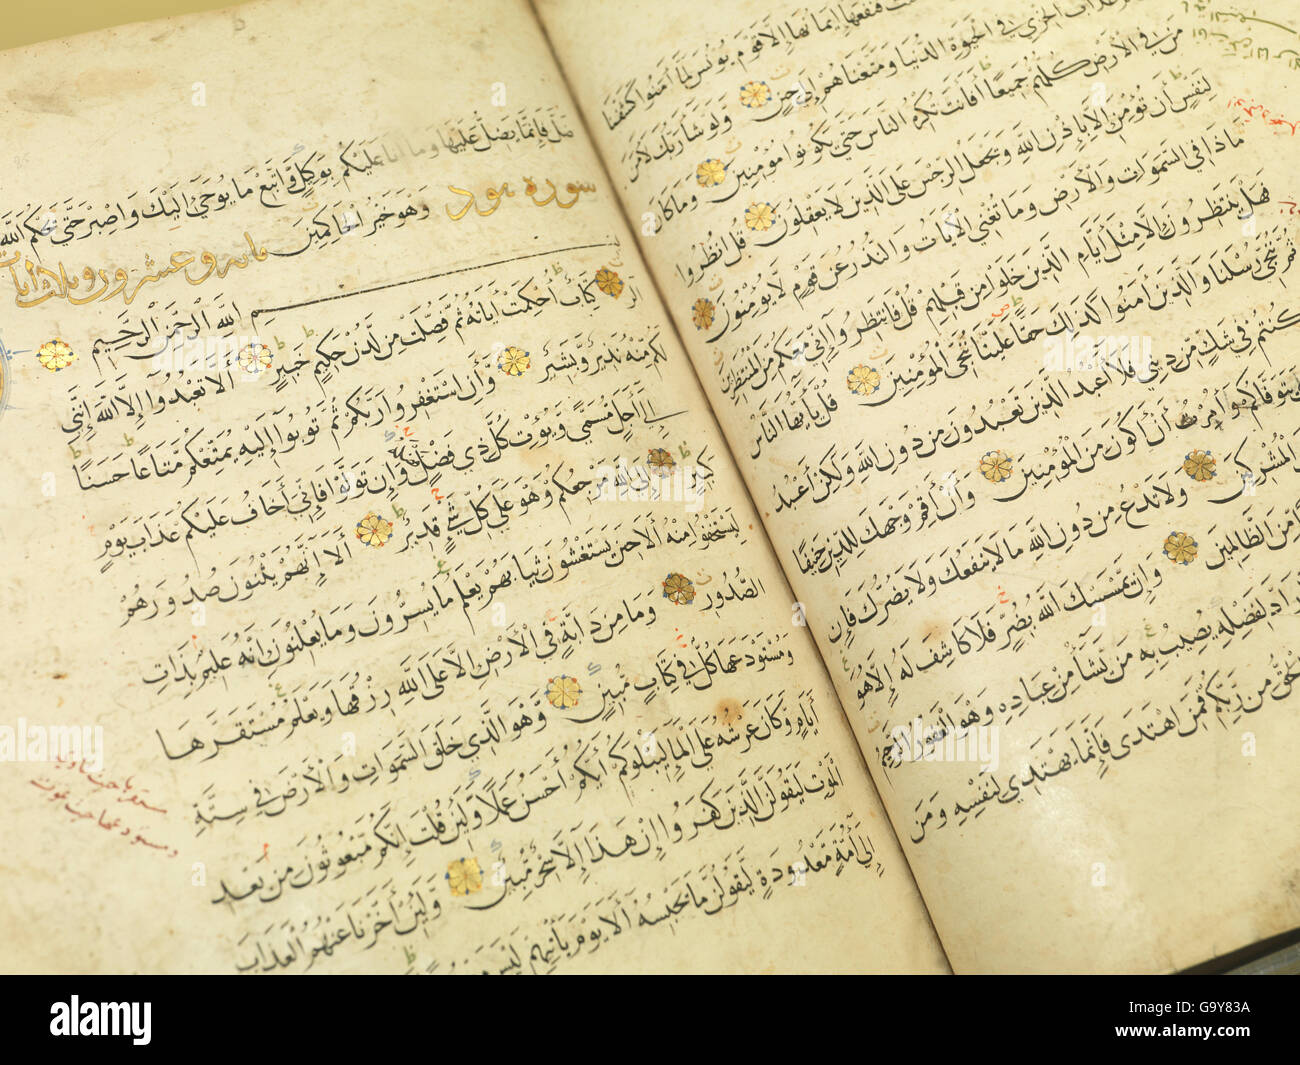 Closeup of pages of the Quran, written in 1464 - Stock Image